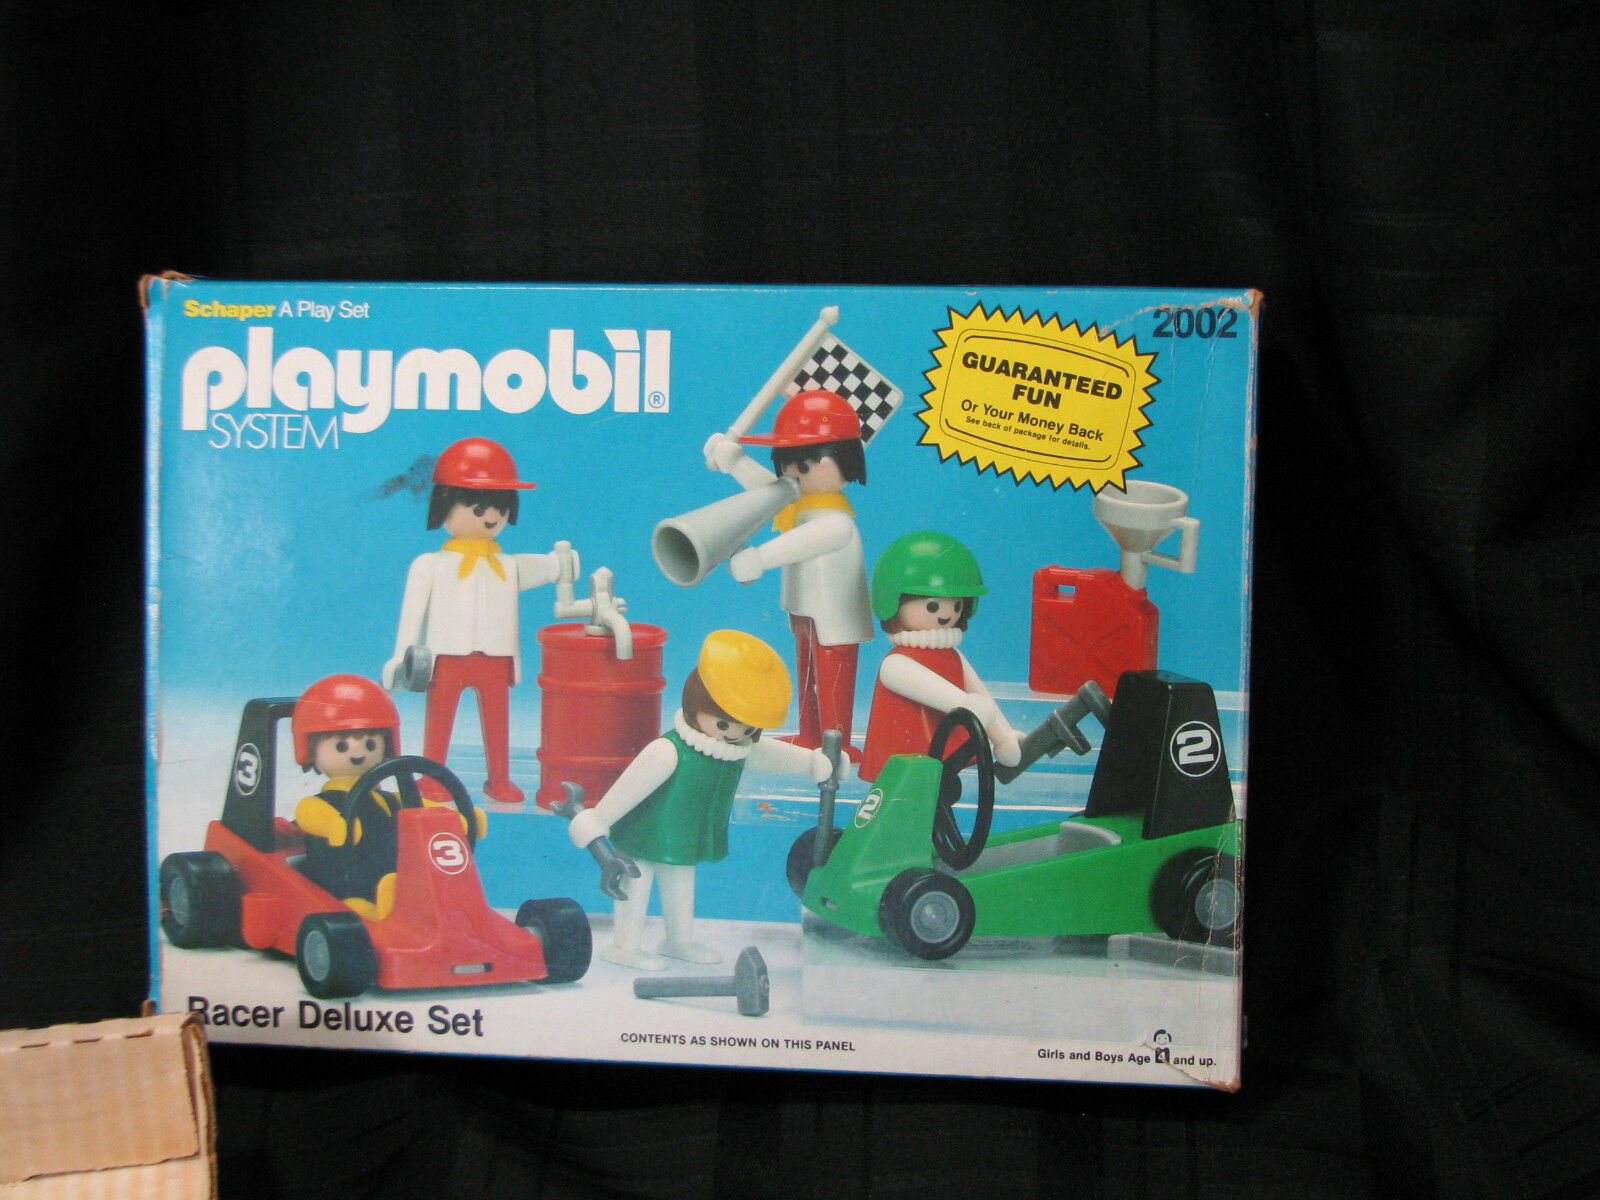 VINTAGE PLAYMOBIL 1980 1980 1980 RACER DELUXE SET SCHAPER MANUFACTURING COMPANY TOY cfd643